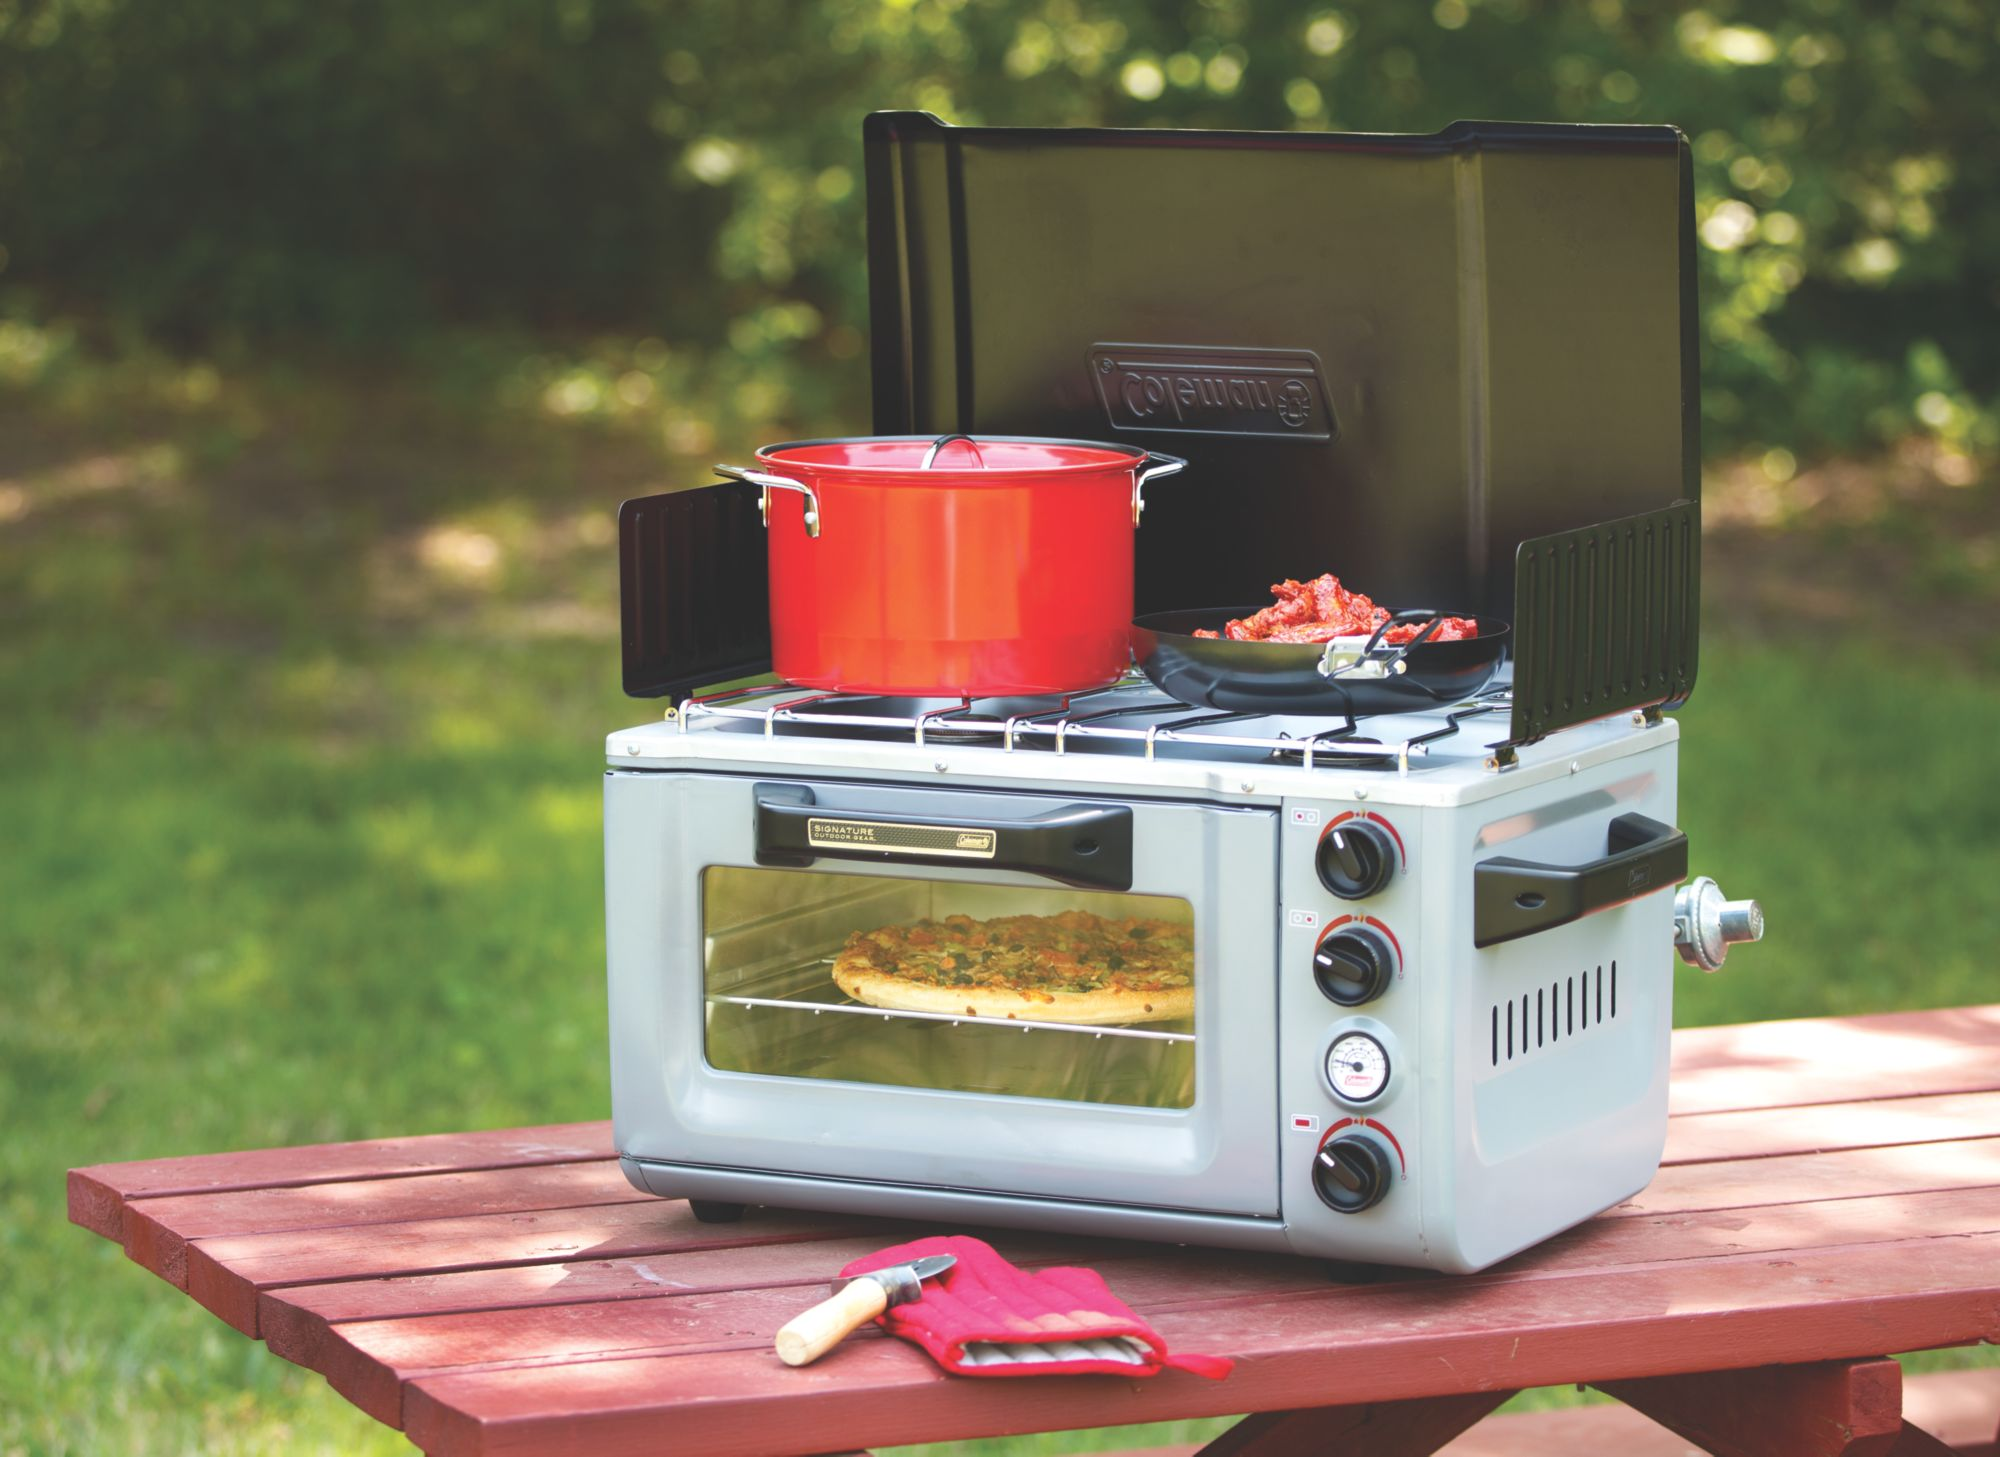 Magic Chef Oven Thermostat 93 Portable Camp Fireplace